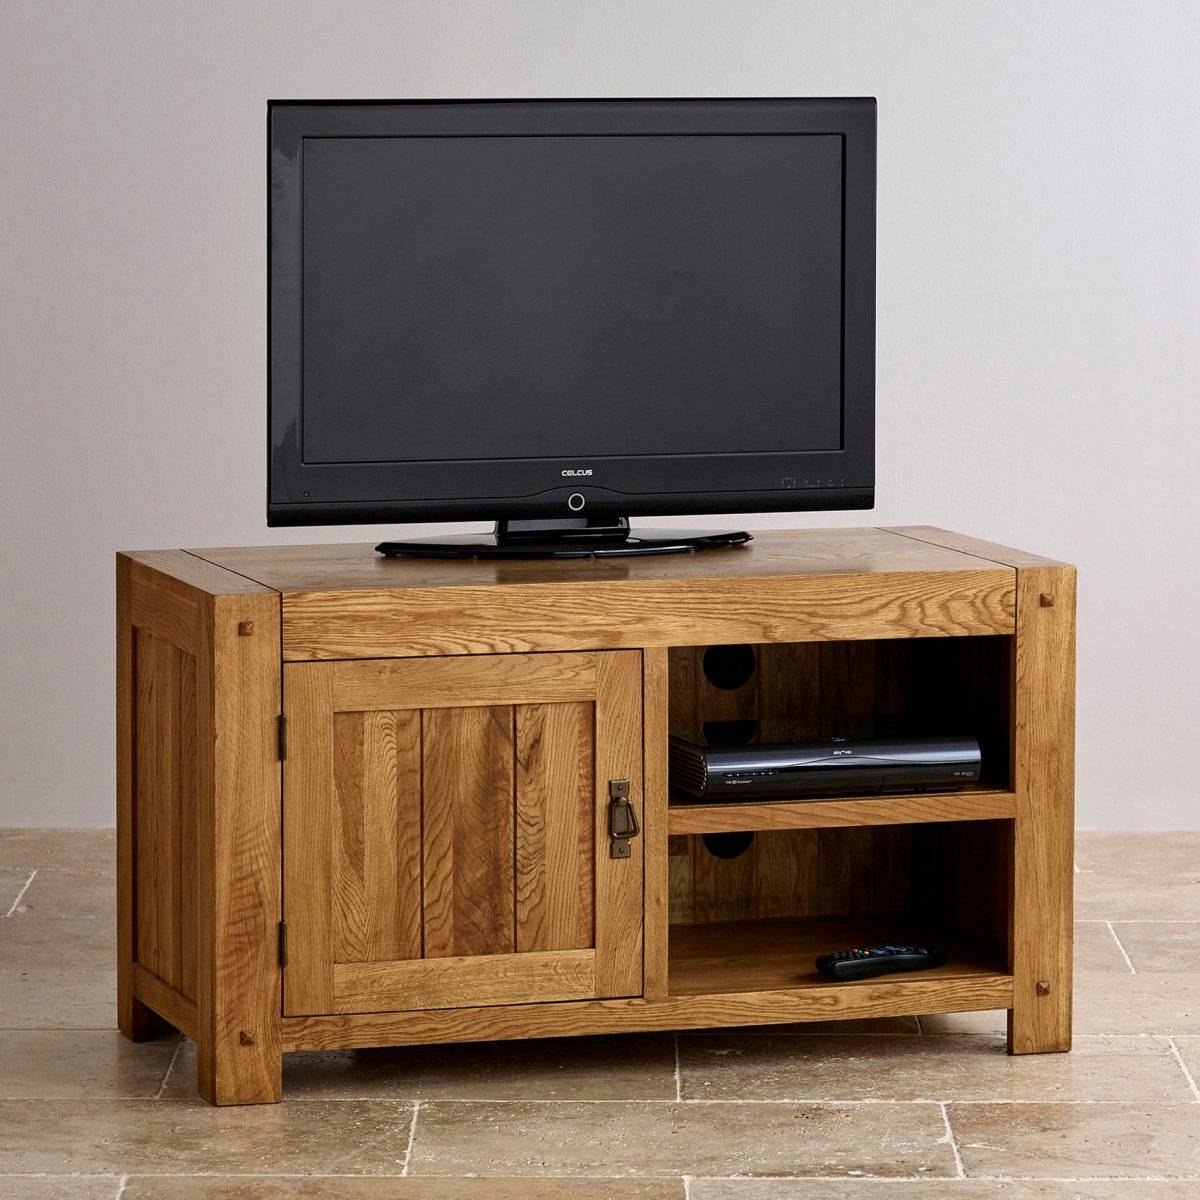 Quercus Tv Cabinet In Rustic Solid Oak | Oak Furniture Land with Oak Tv Cabinets (Image 11 of 15)